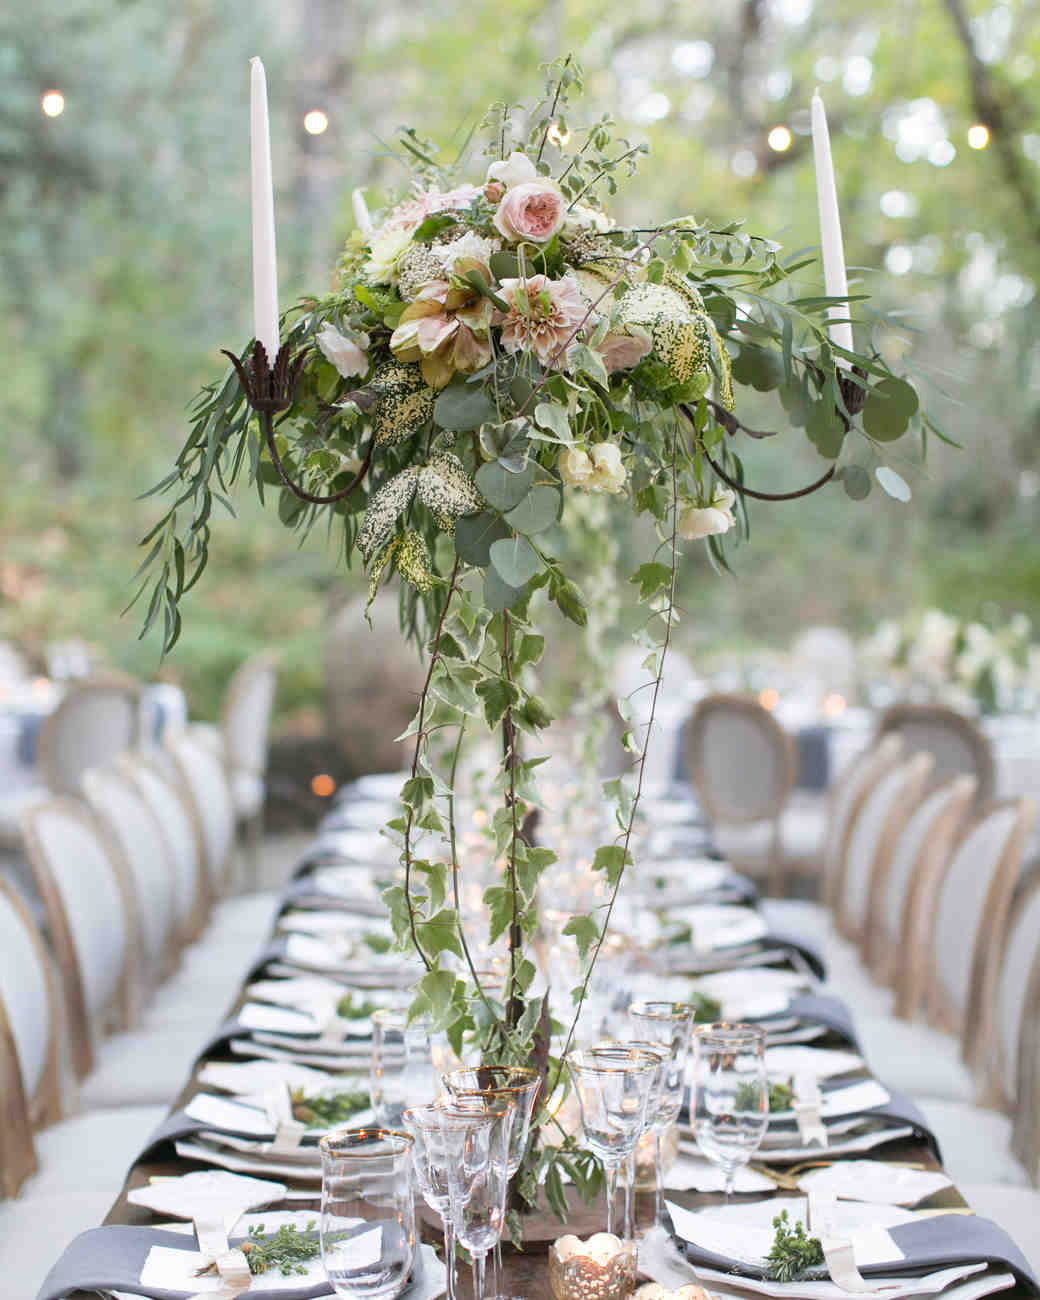 50 wedding centerpiece ideas we love martha stewart weddings rh marthastewartweddings com